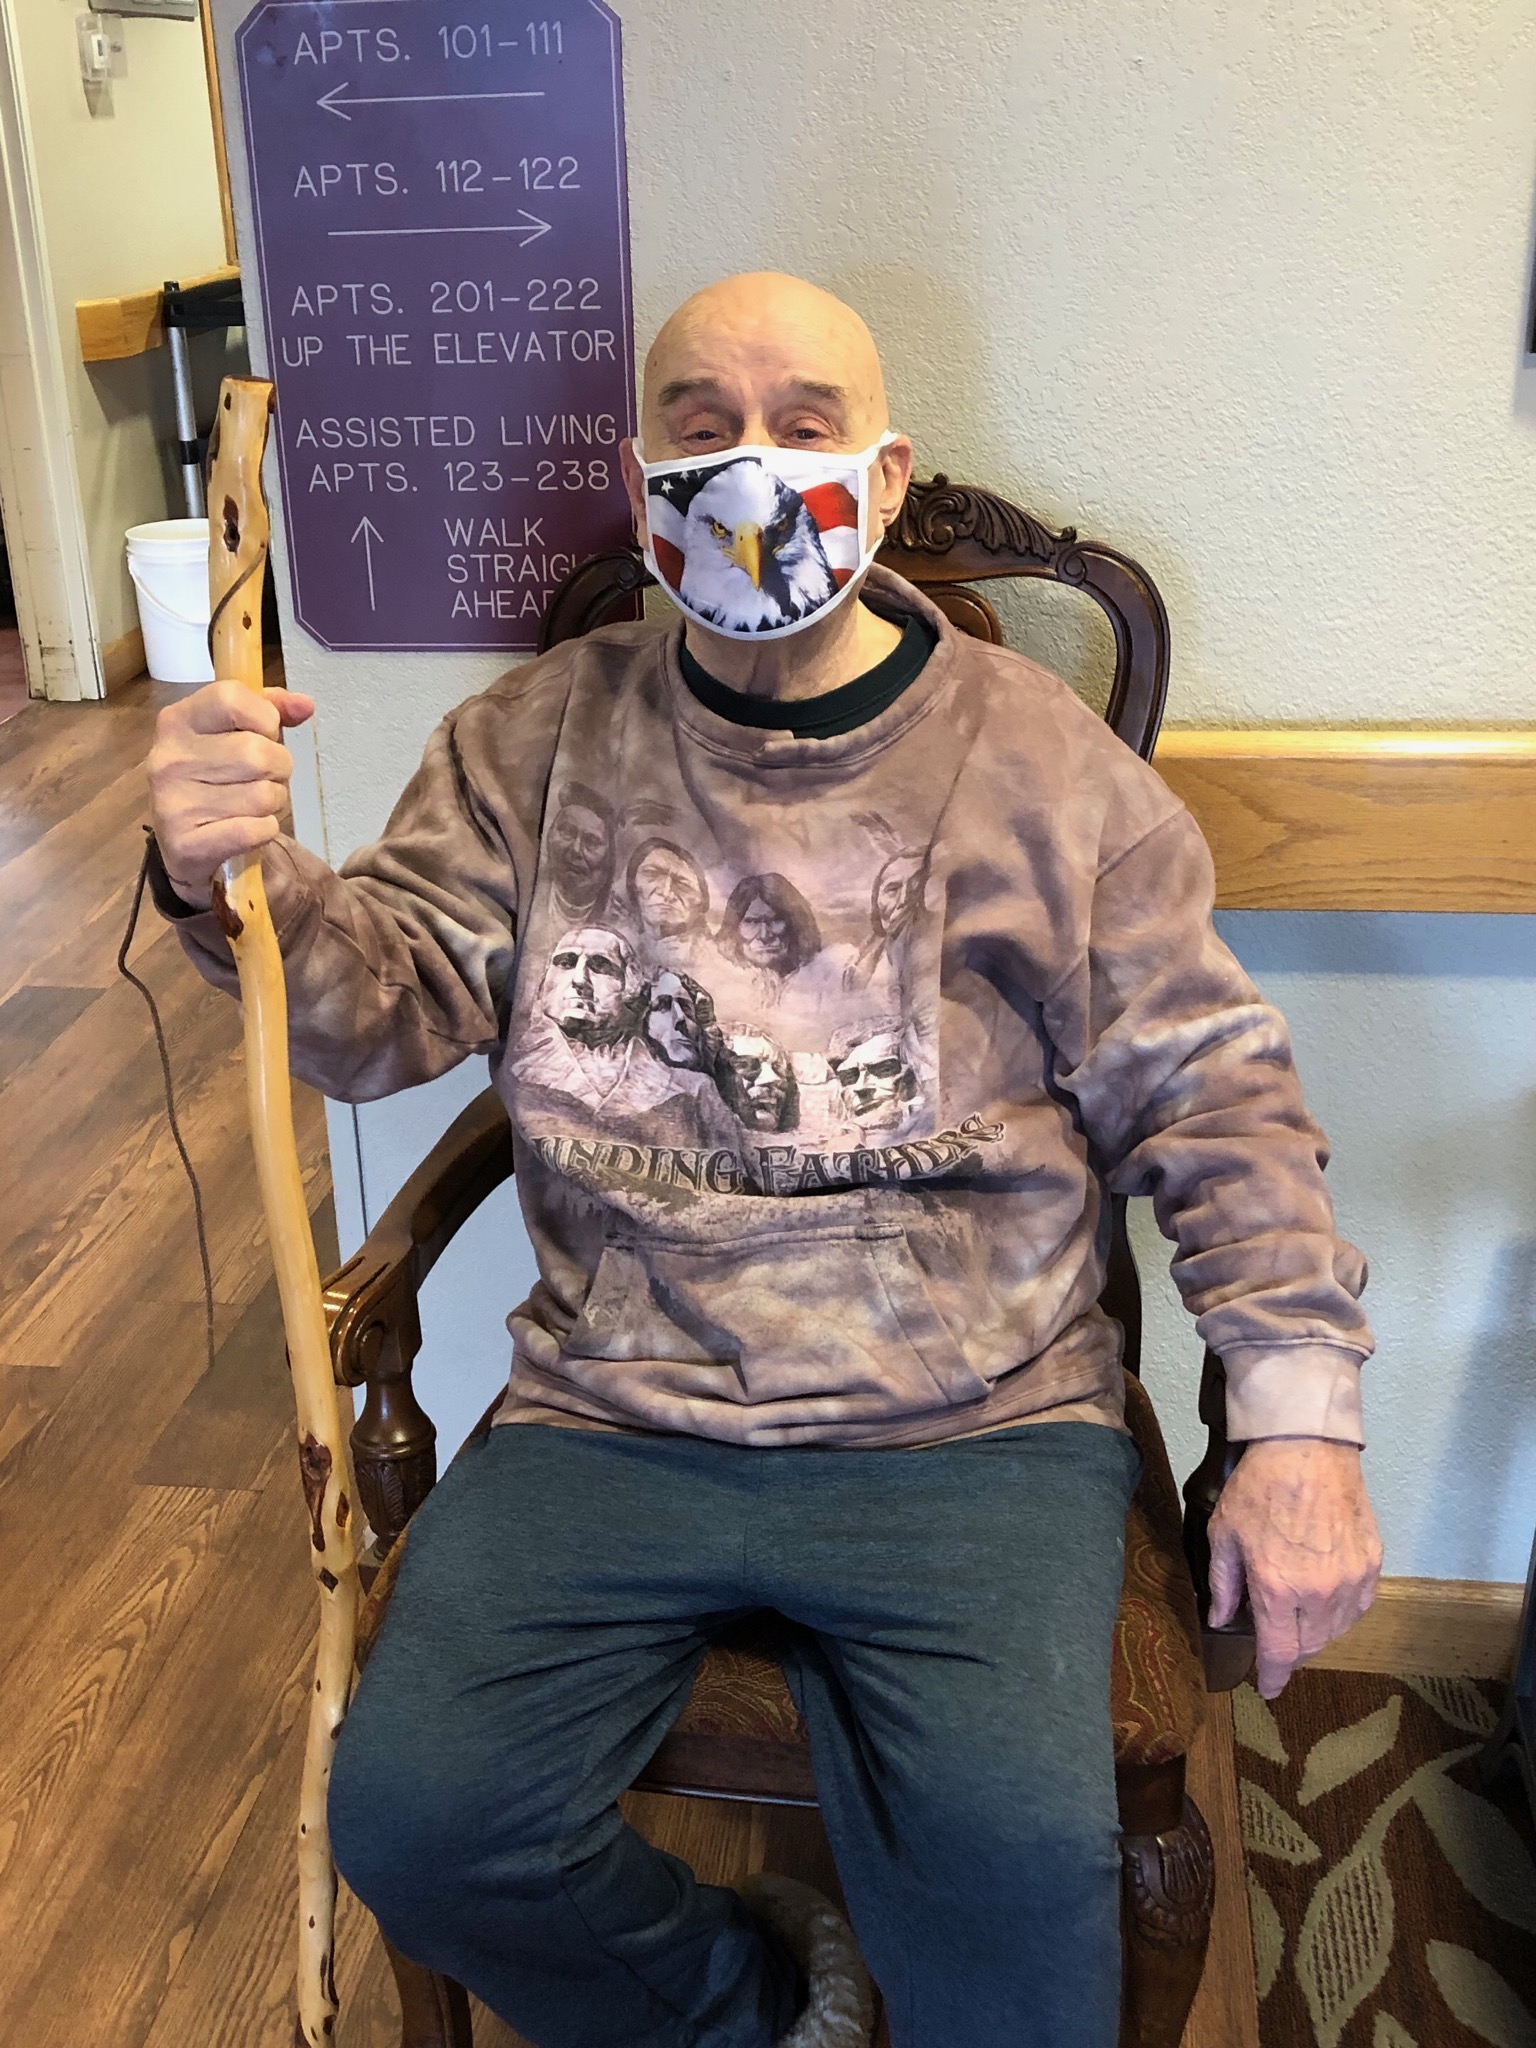 Milt taking a break from his walk with his black hills wooden walking stick!